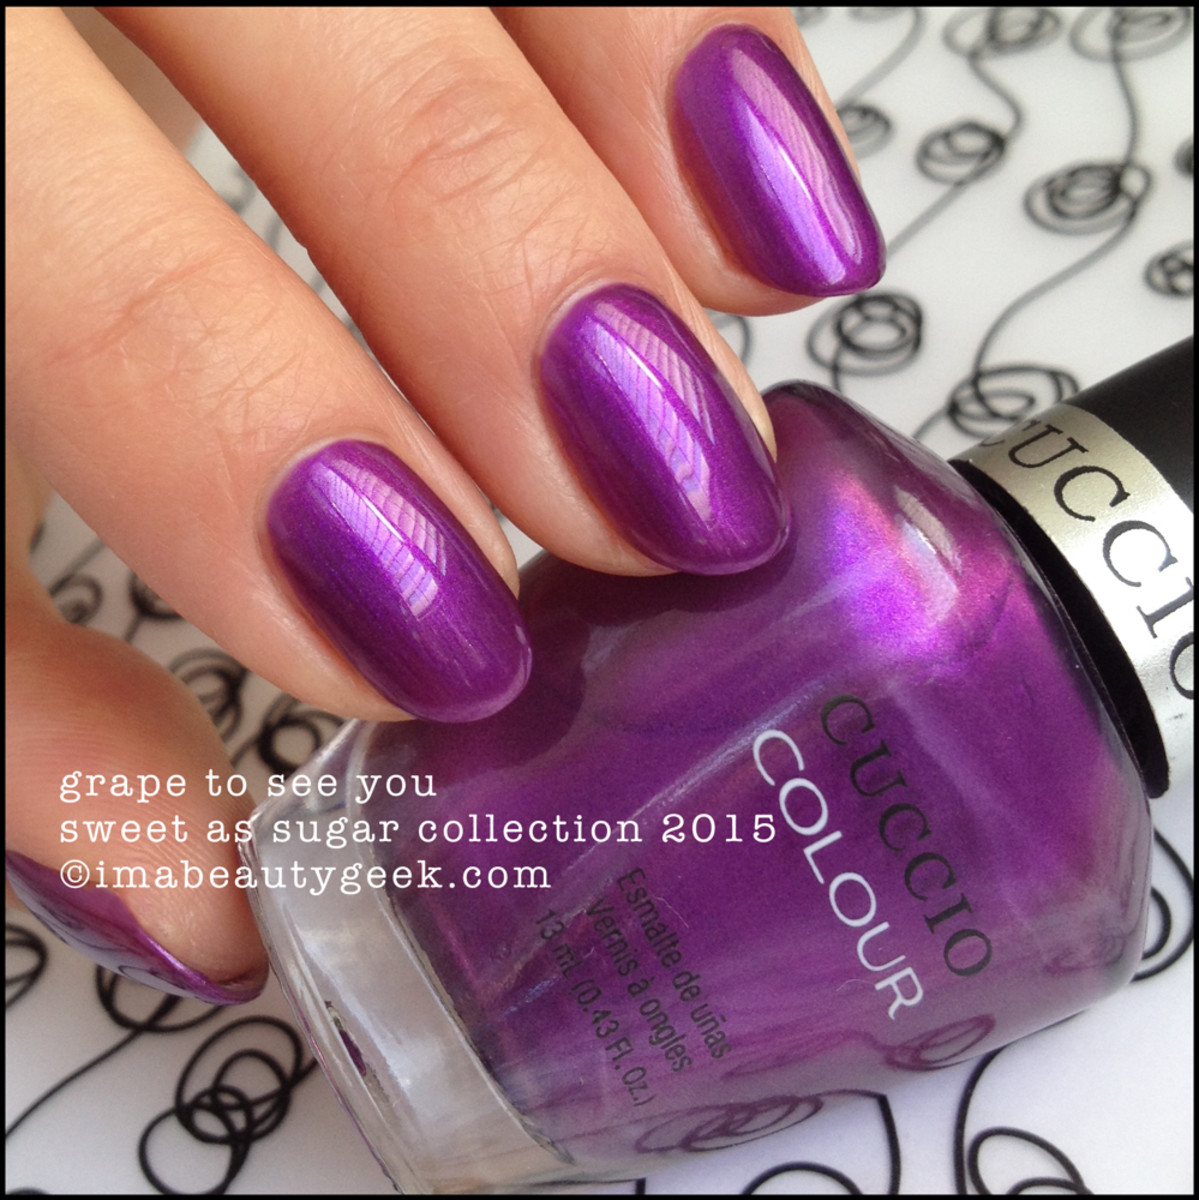 Cuccio Colour Nail Polish Grape To See You Sweet as Sugar Collection 2015